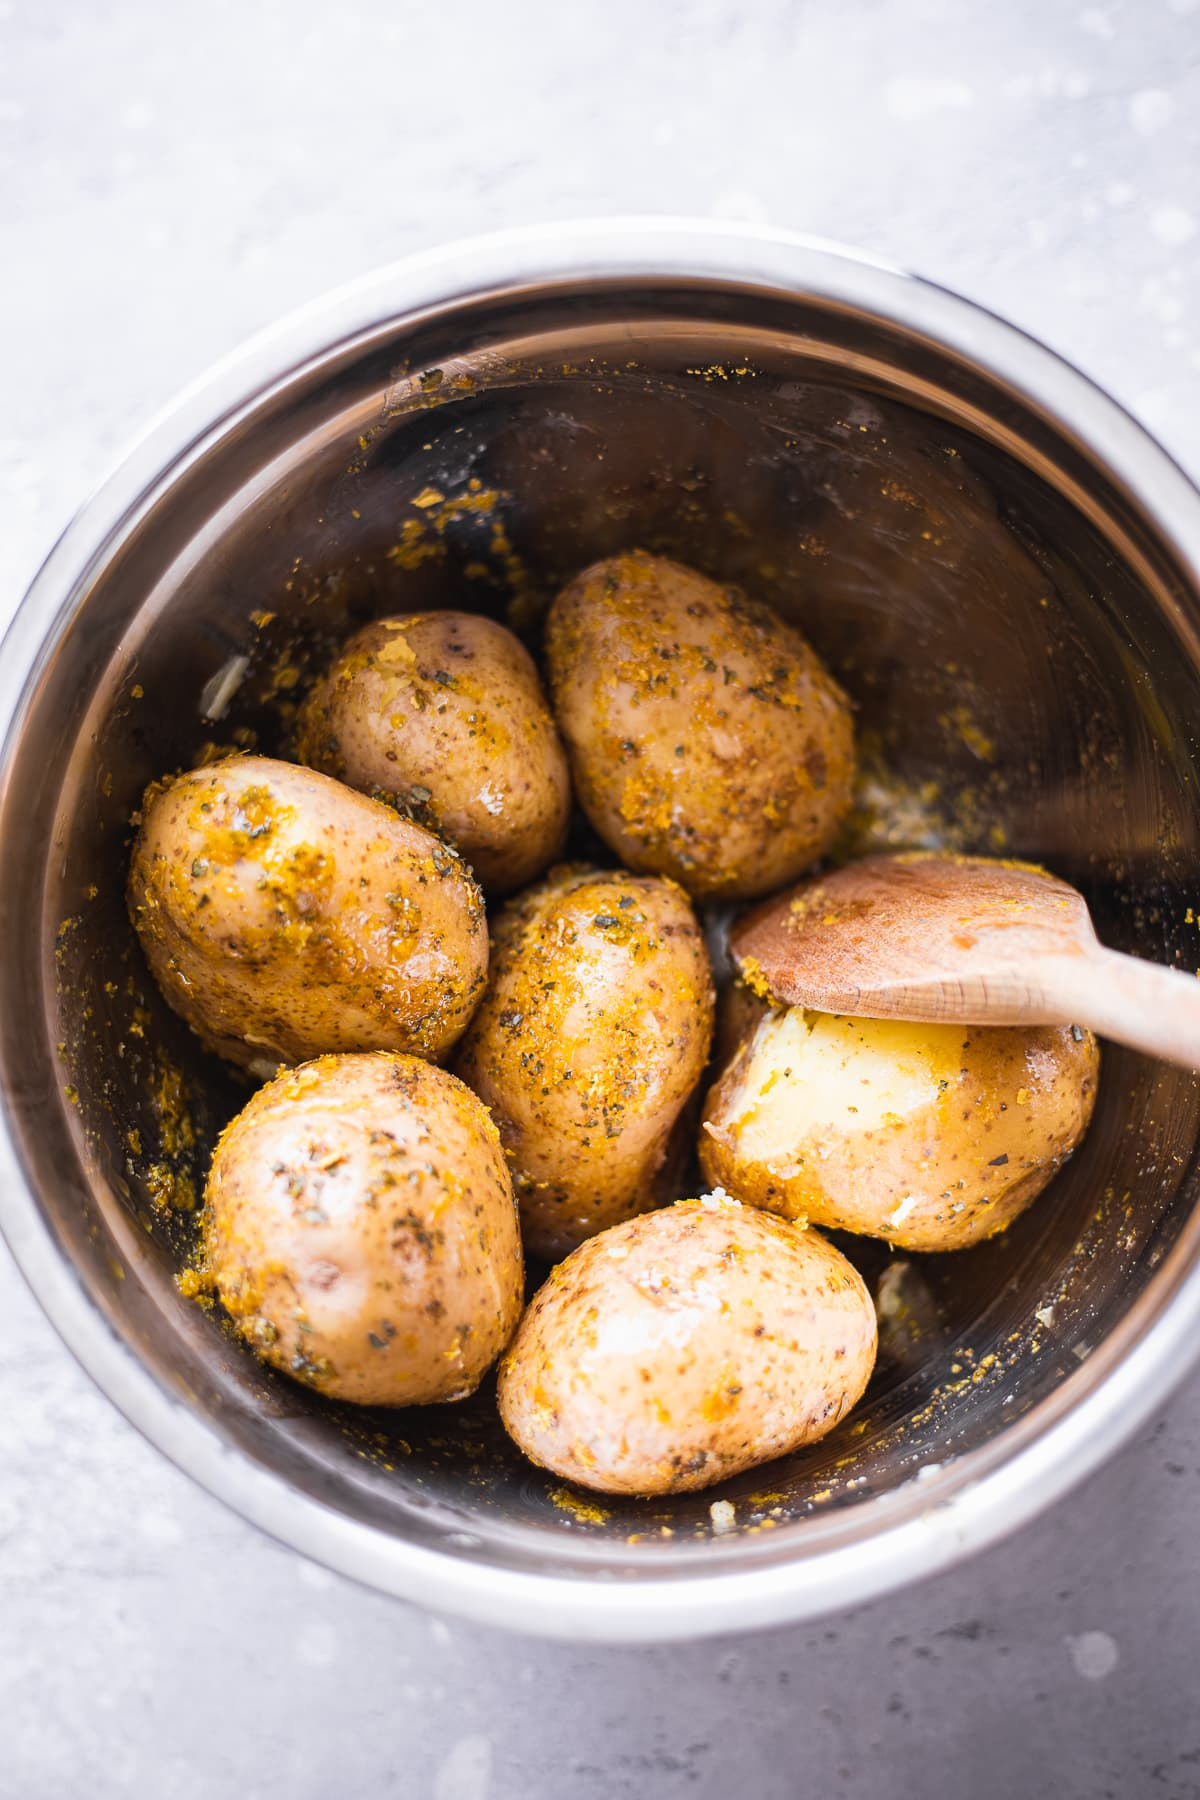 Potatoes with herbs in a bowl